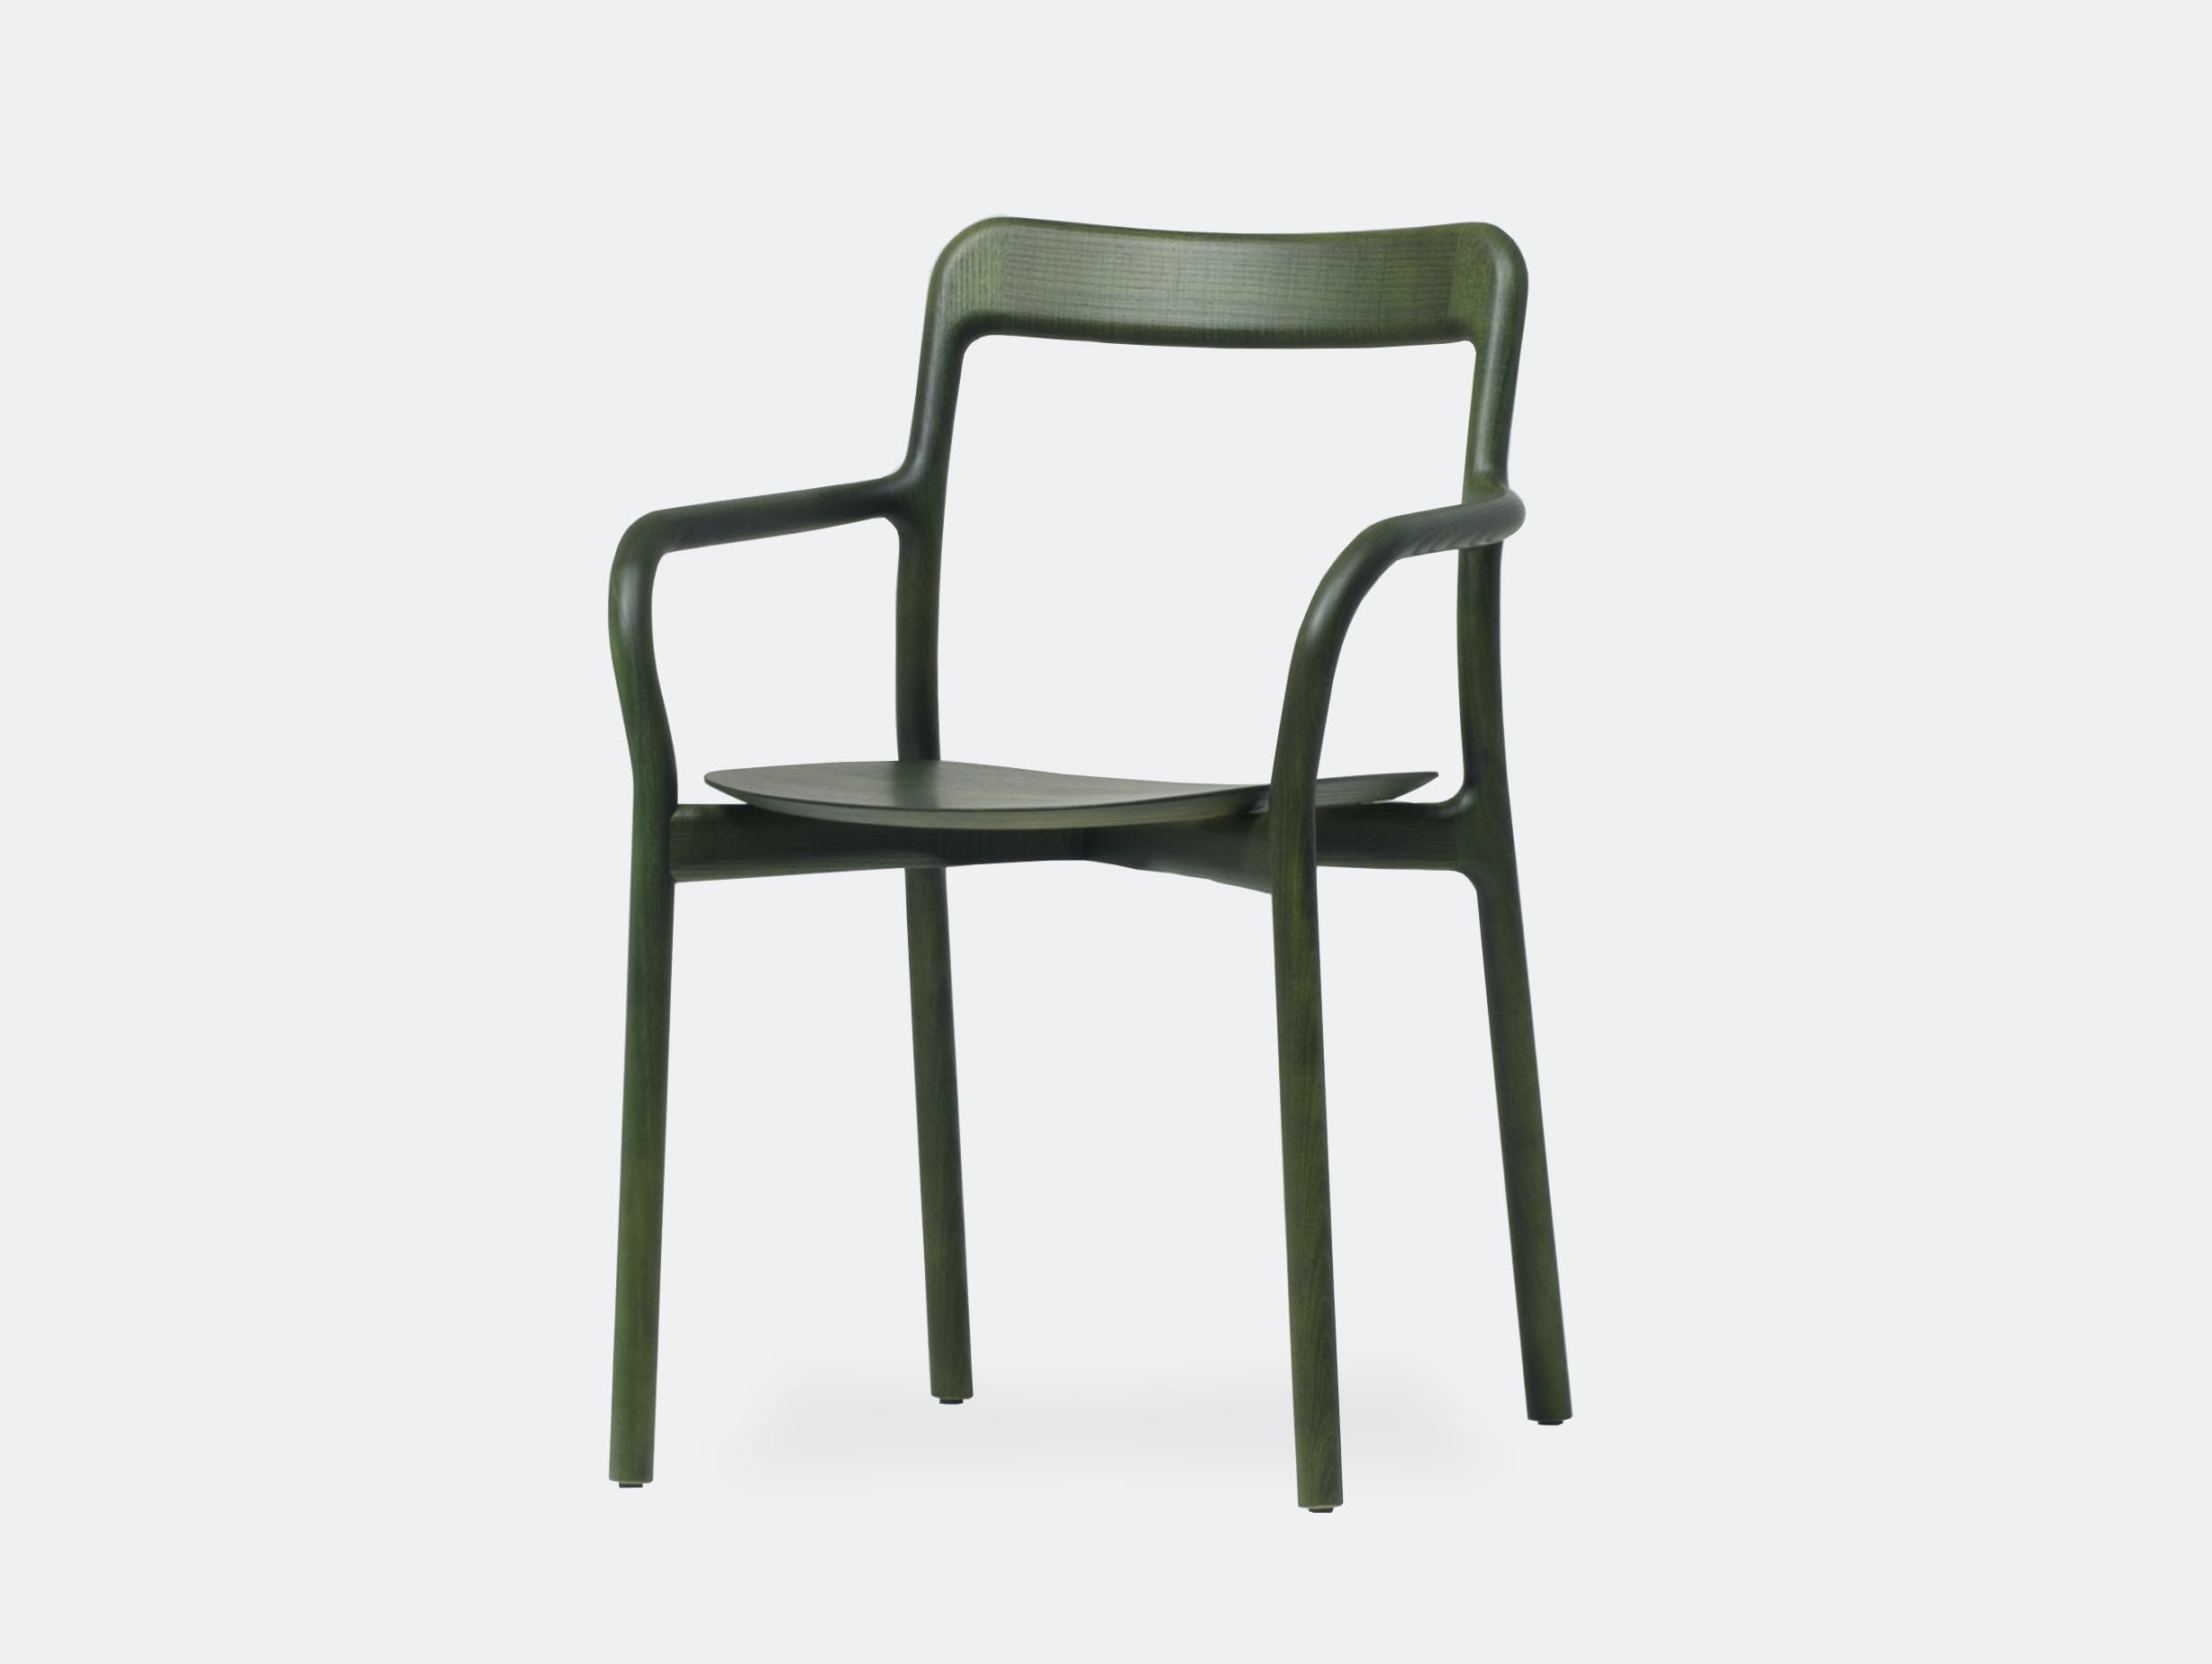 Mattiazzi Branca Chair Green Sam Hecht Kim Colin